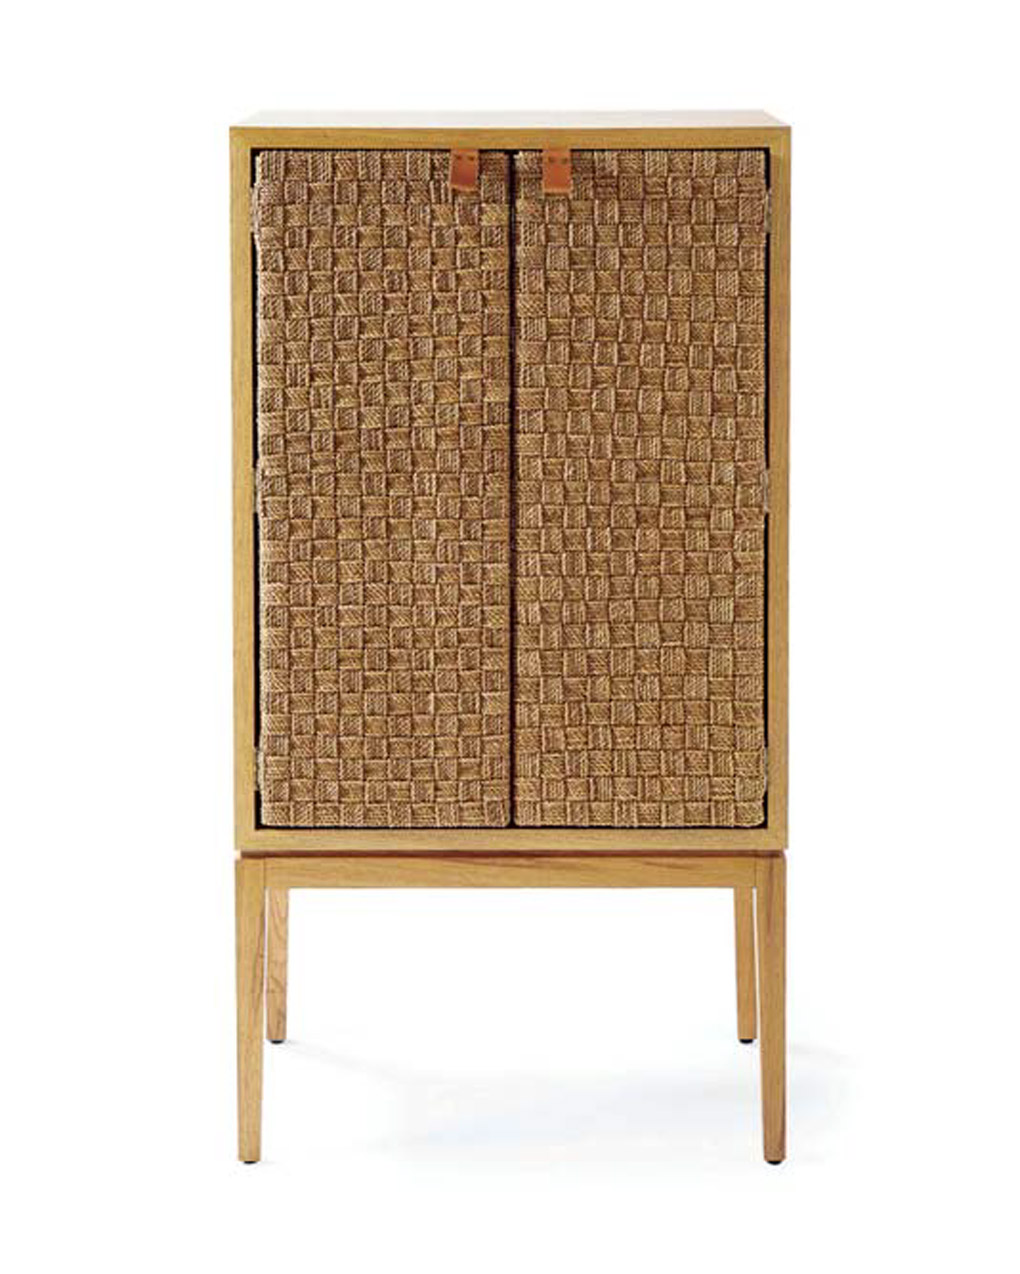 Beach cottage inspired bar cart with woven styled doors.